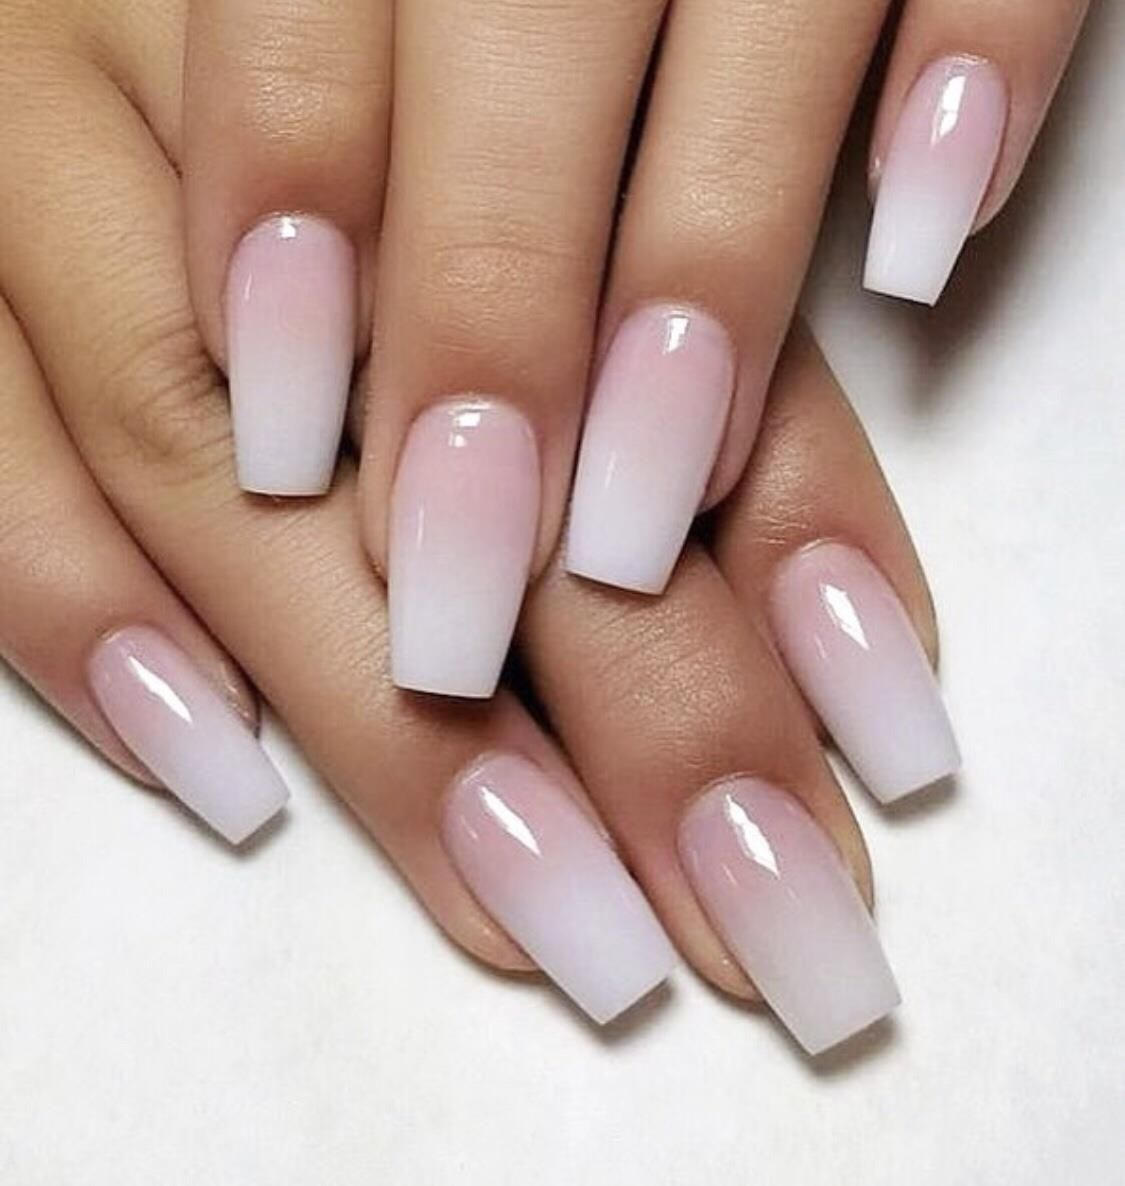 Happy Wednesday Discount 10 On Instagram Choose Your Shape And We Ll Do It De La Daisy Nail Acrylic Nail Shapes Swag Nails Summer Acrylic Nails